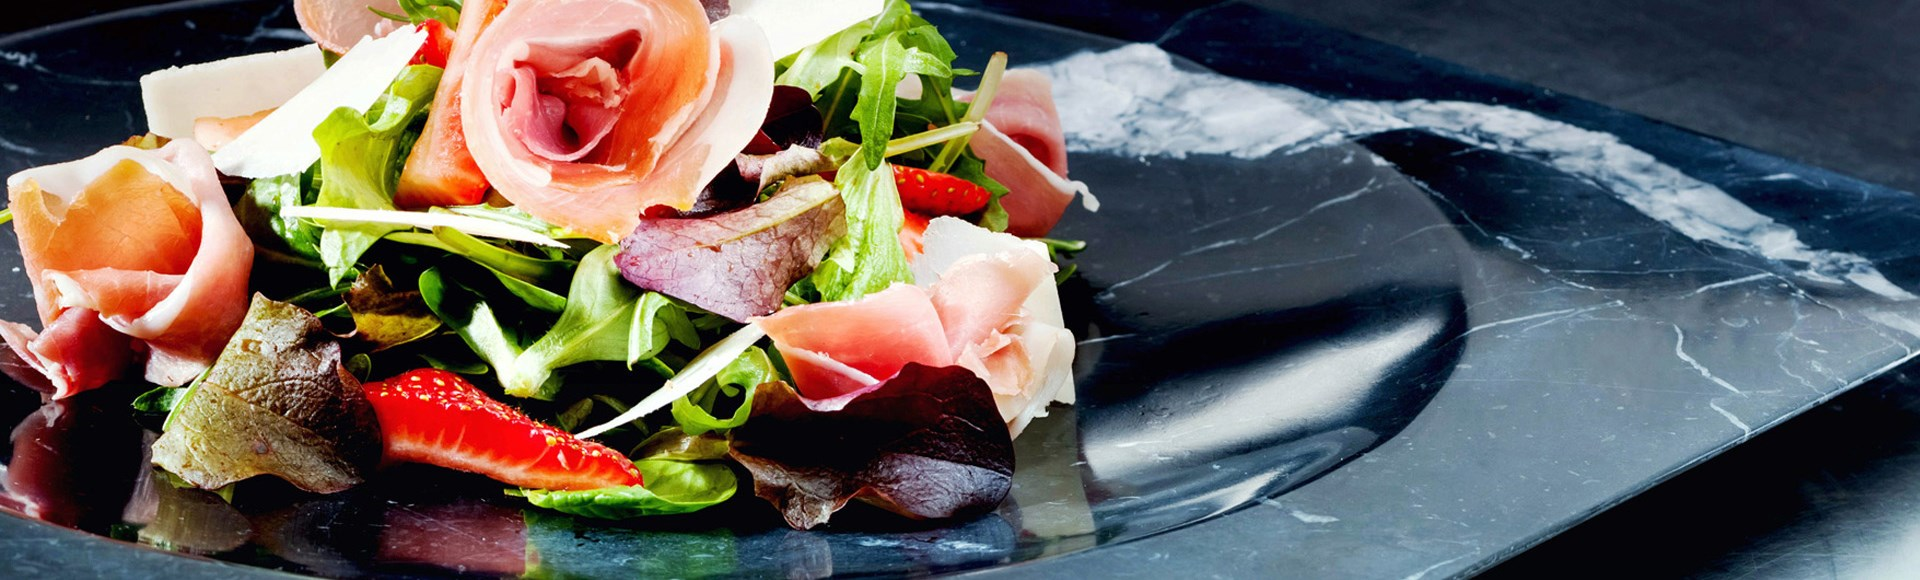 fresh-spinach-salad-with-prosciutto-and-strawberries - Private Chef Service For Your Villa Holidays In Santorini, Cyclades, Greece